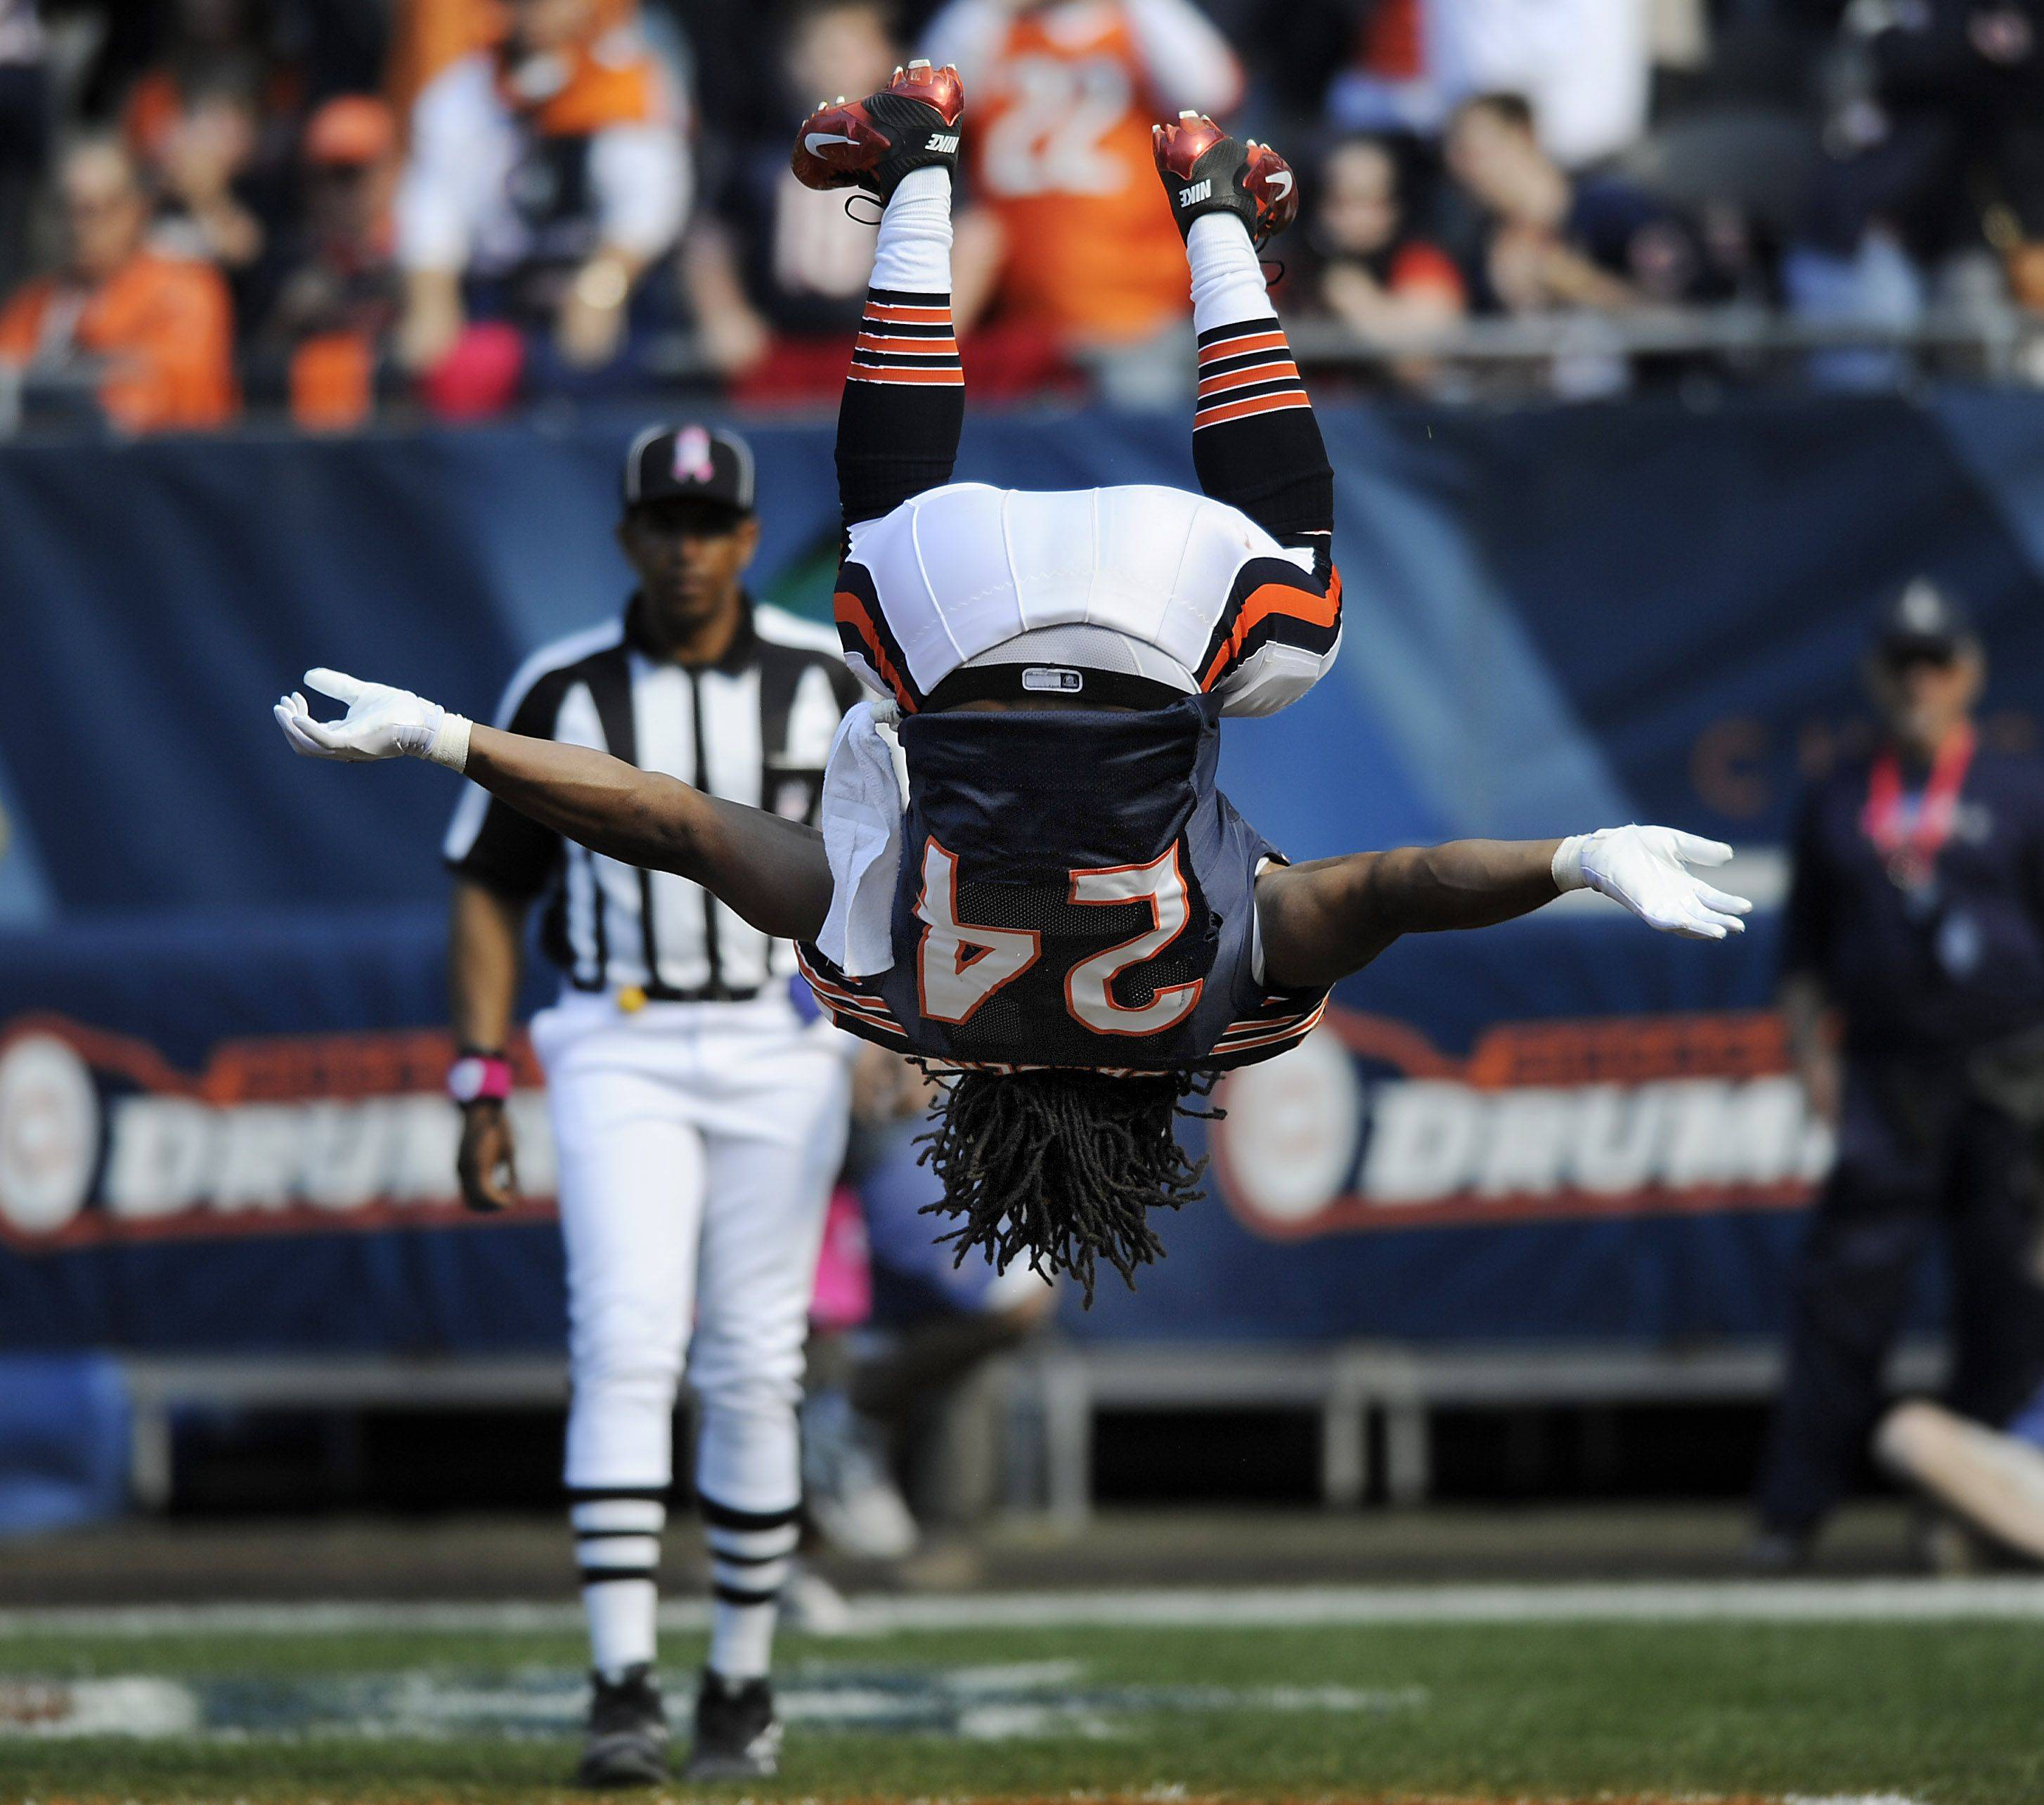 Bears Marion Barber celebrates his 4th quarter touchdown.